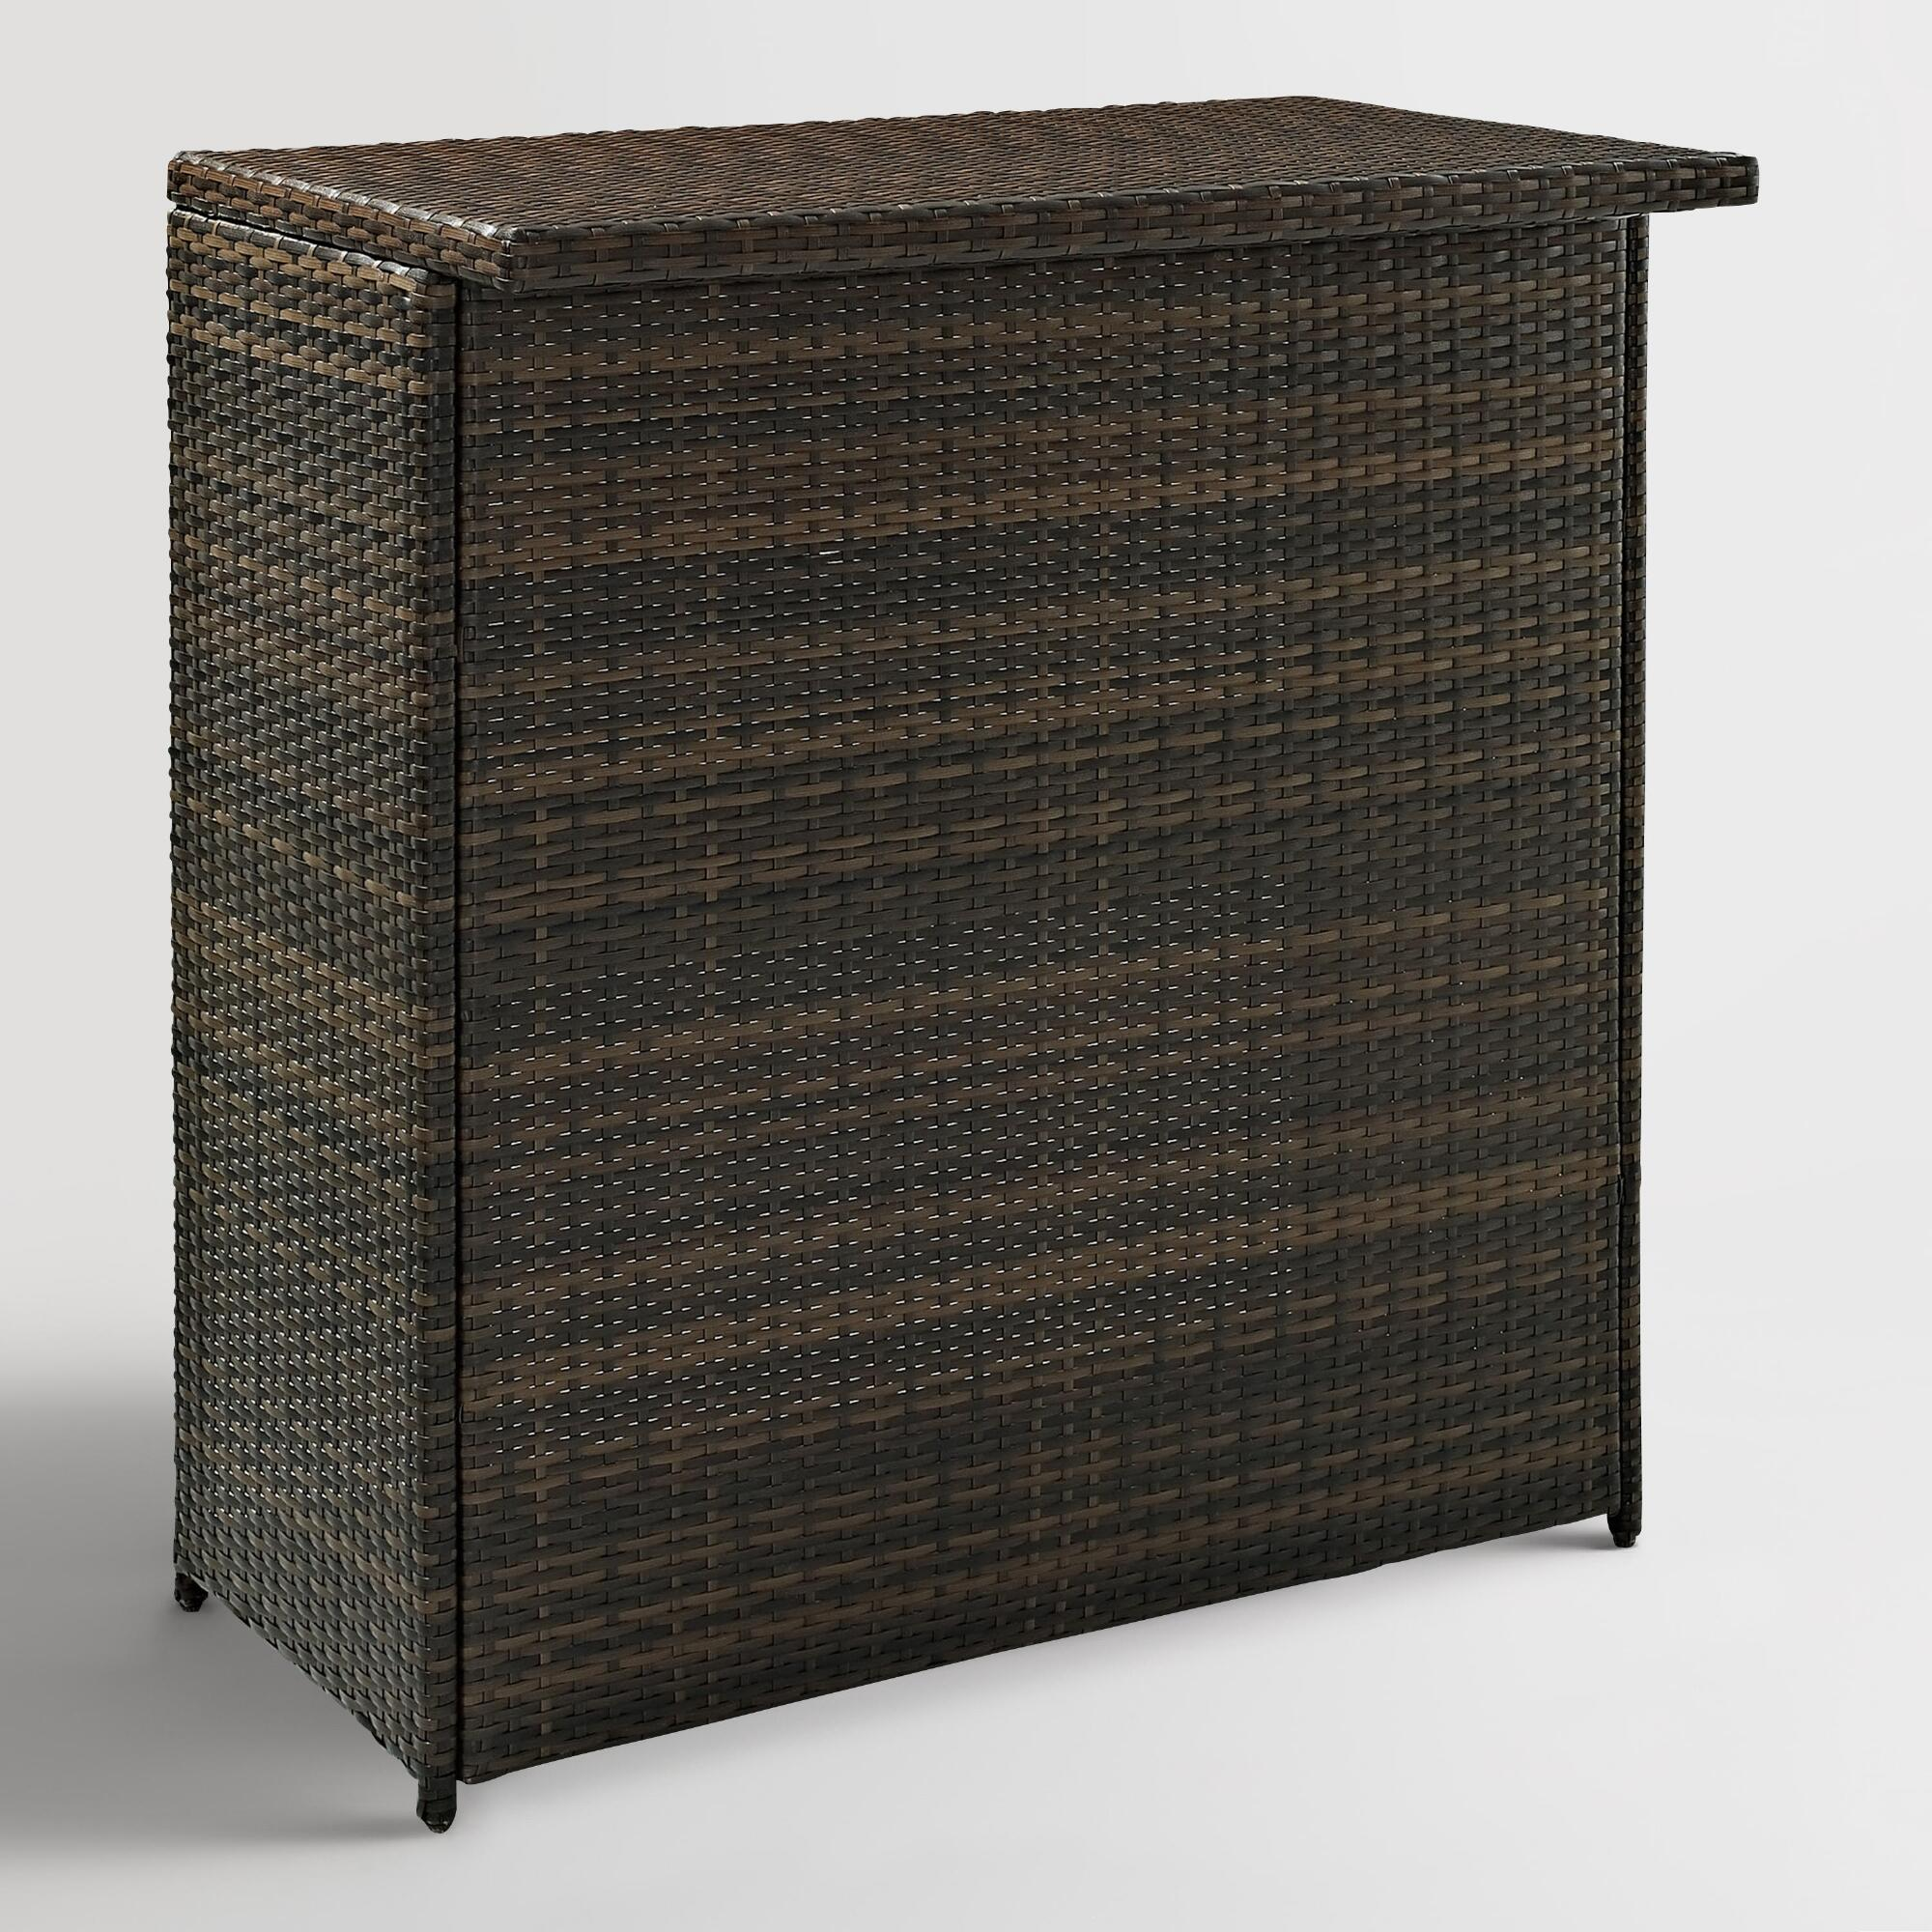 Espresso All Weather Wicker Outdoor Patio Pinamar Bar: Brown - Resin by World Market